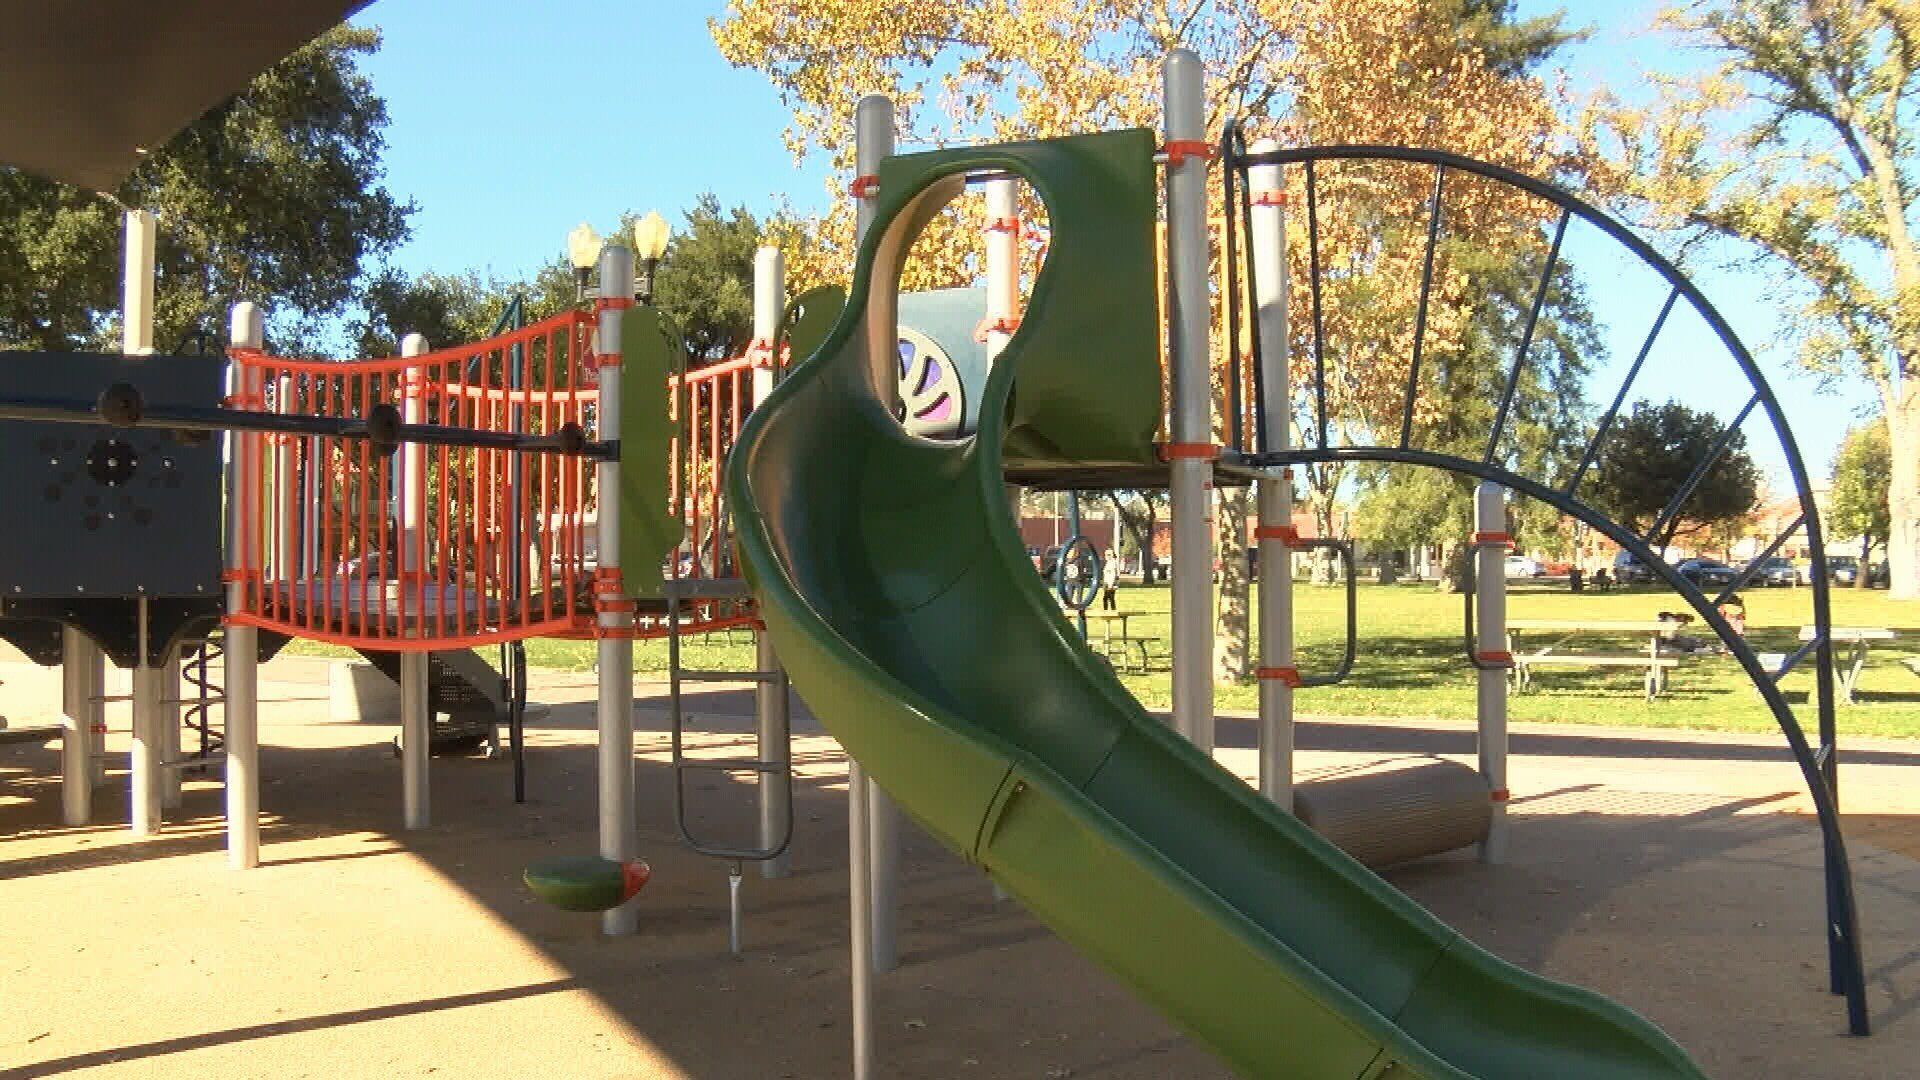 Lighting will be installed at the playground in the Paso Robles Downtown City Park. (KSBY photo)